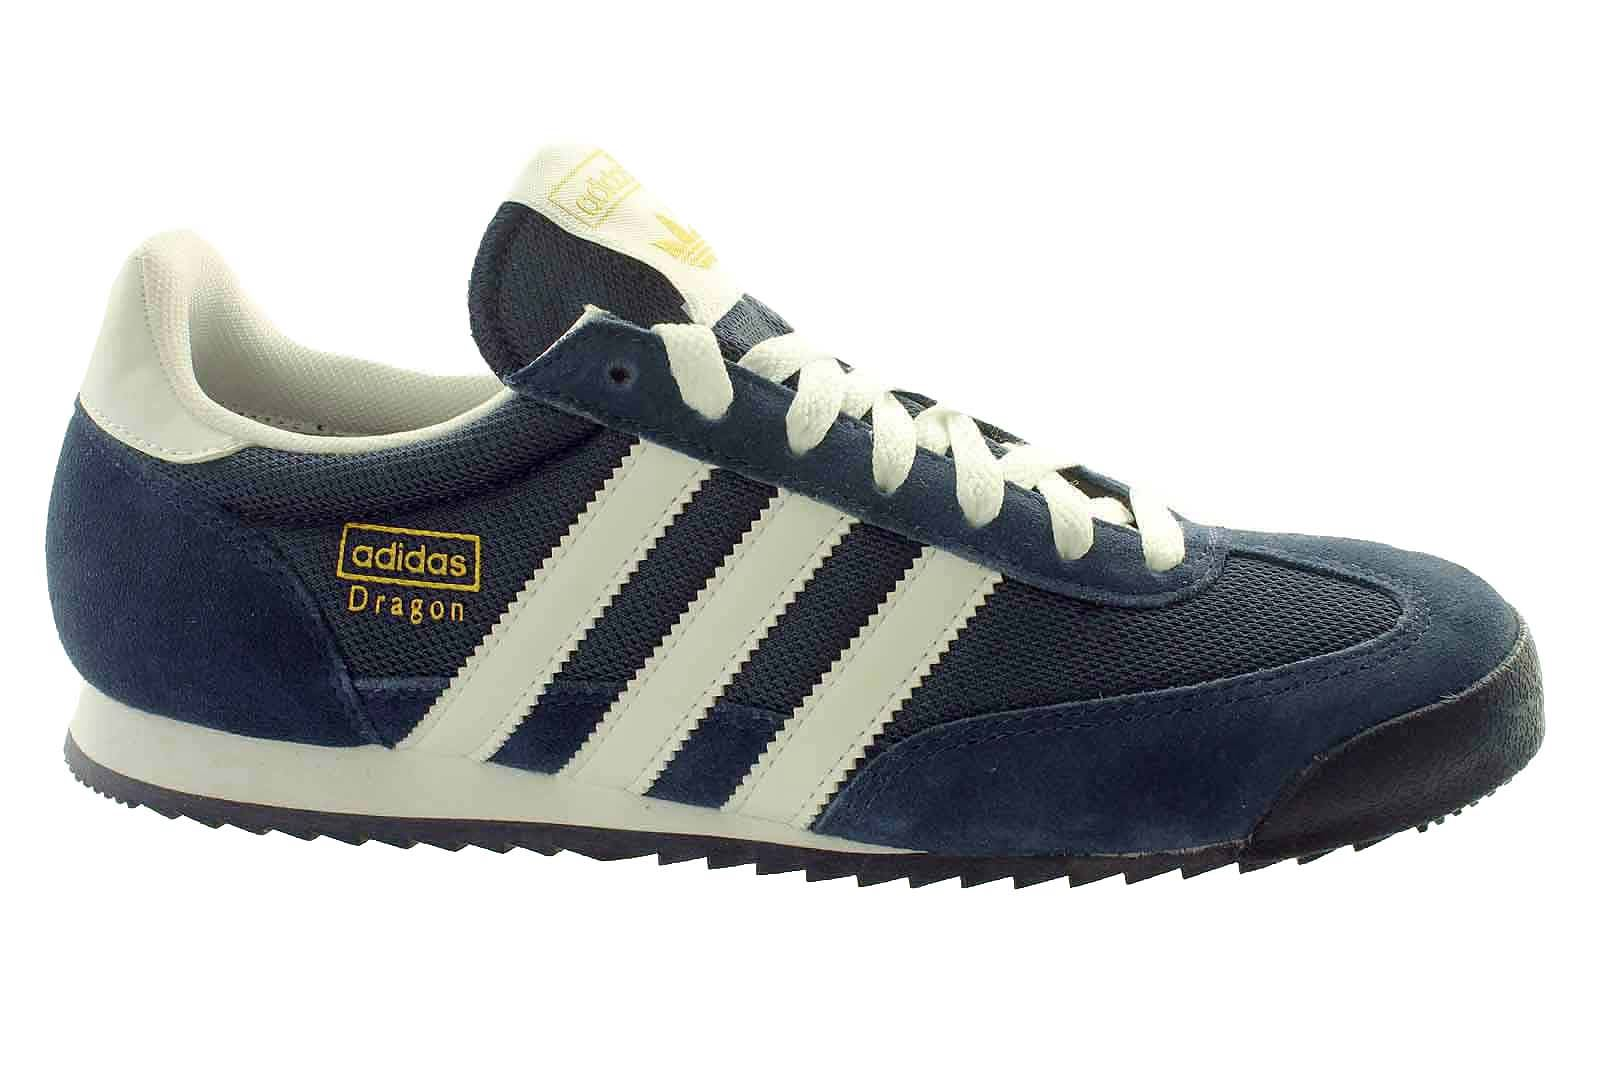 adidas dragon mens trainers blue